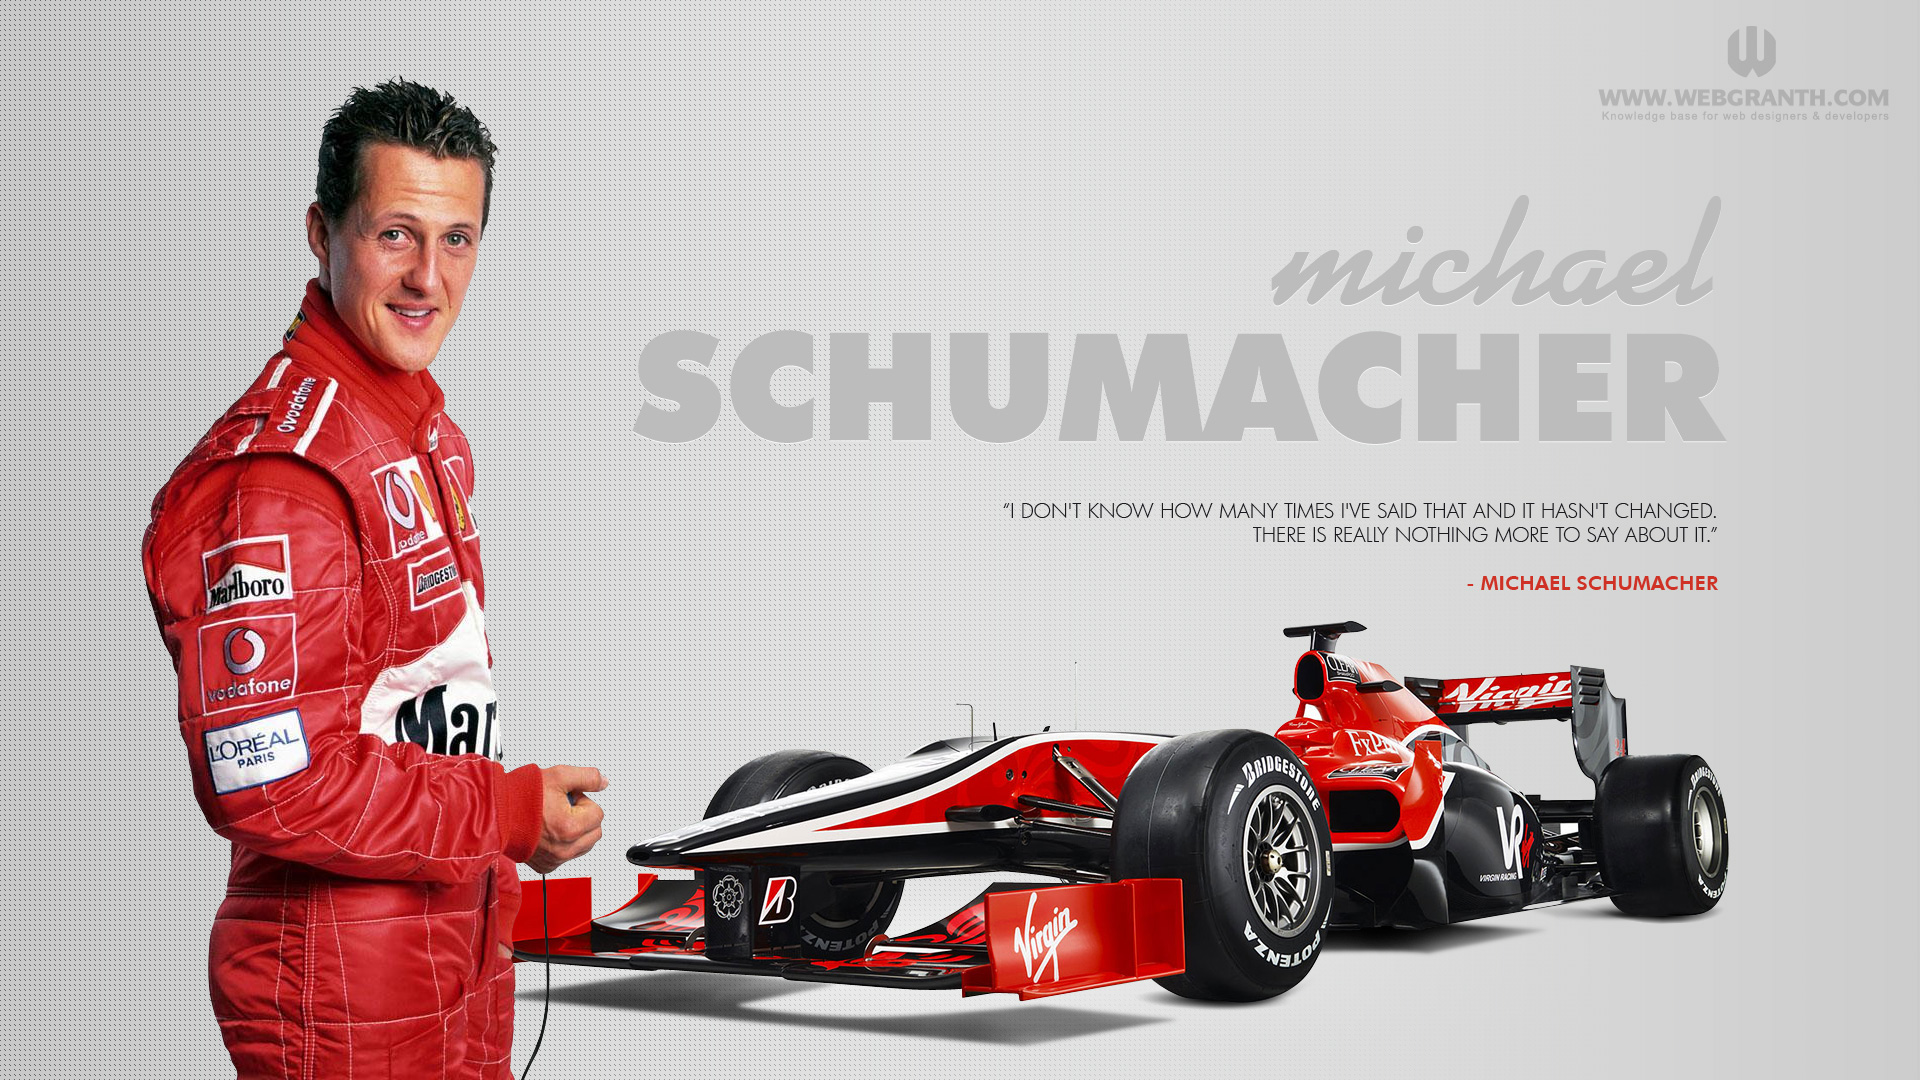 Wallpaper Schumacher